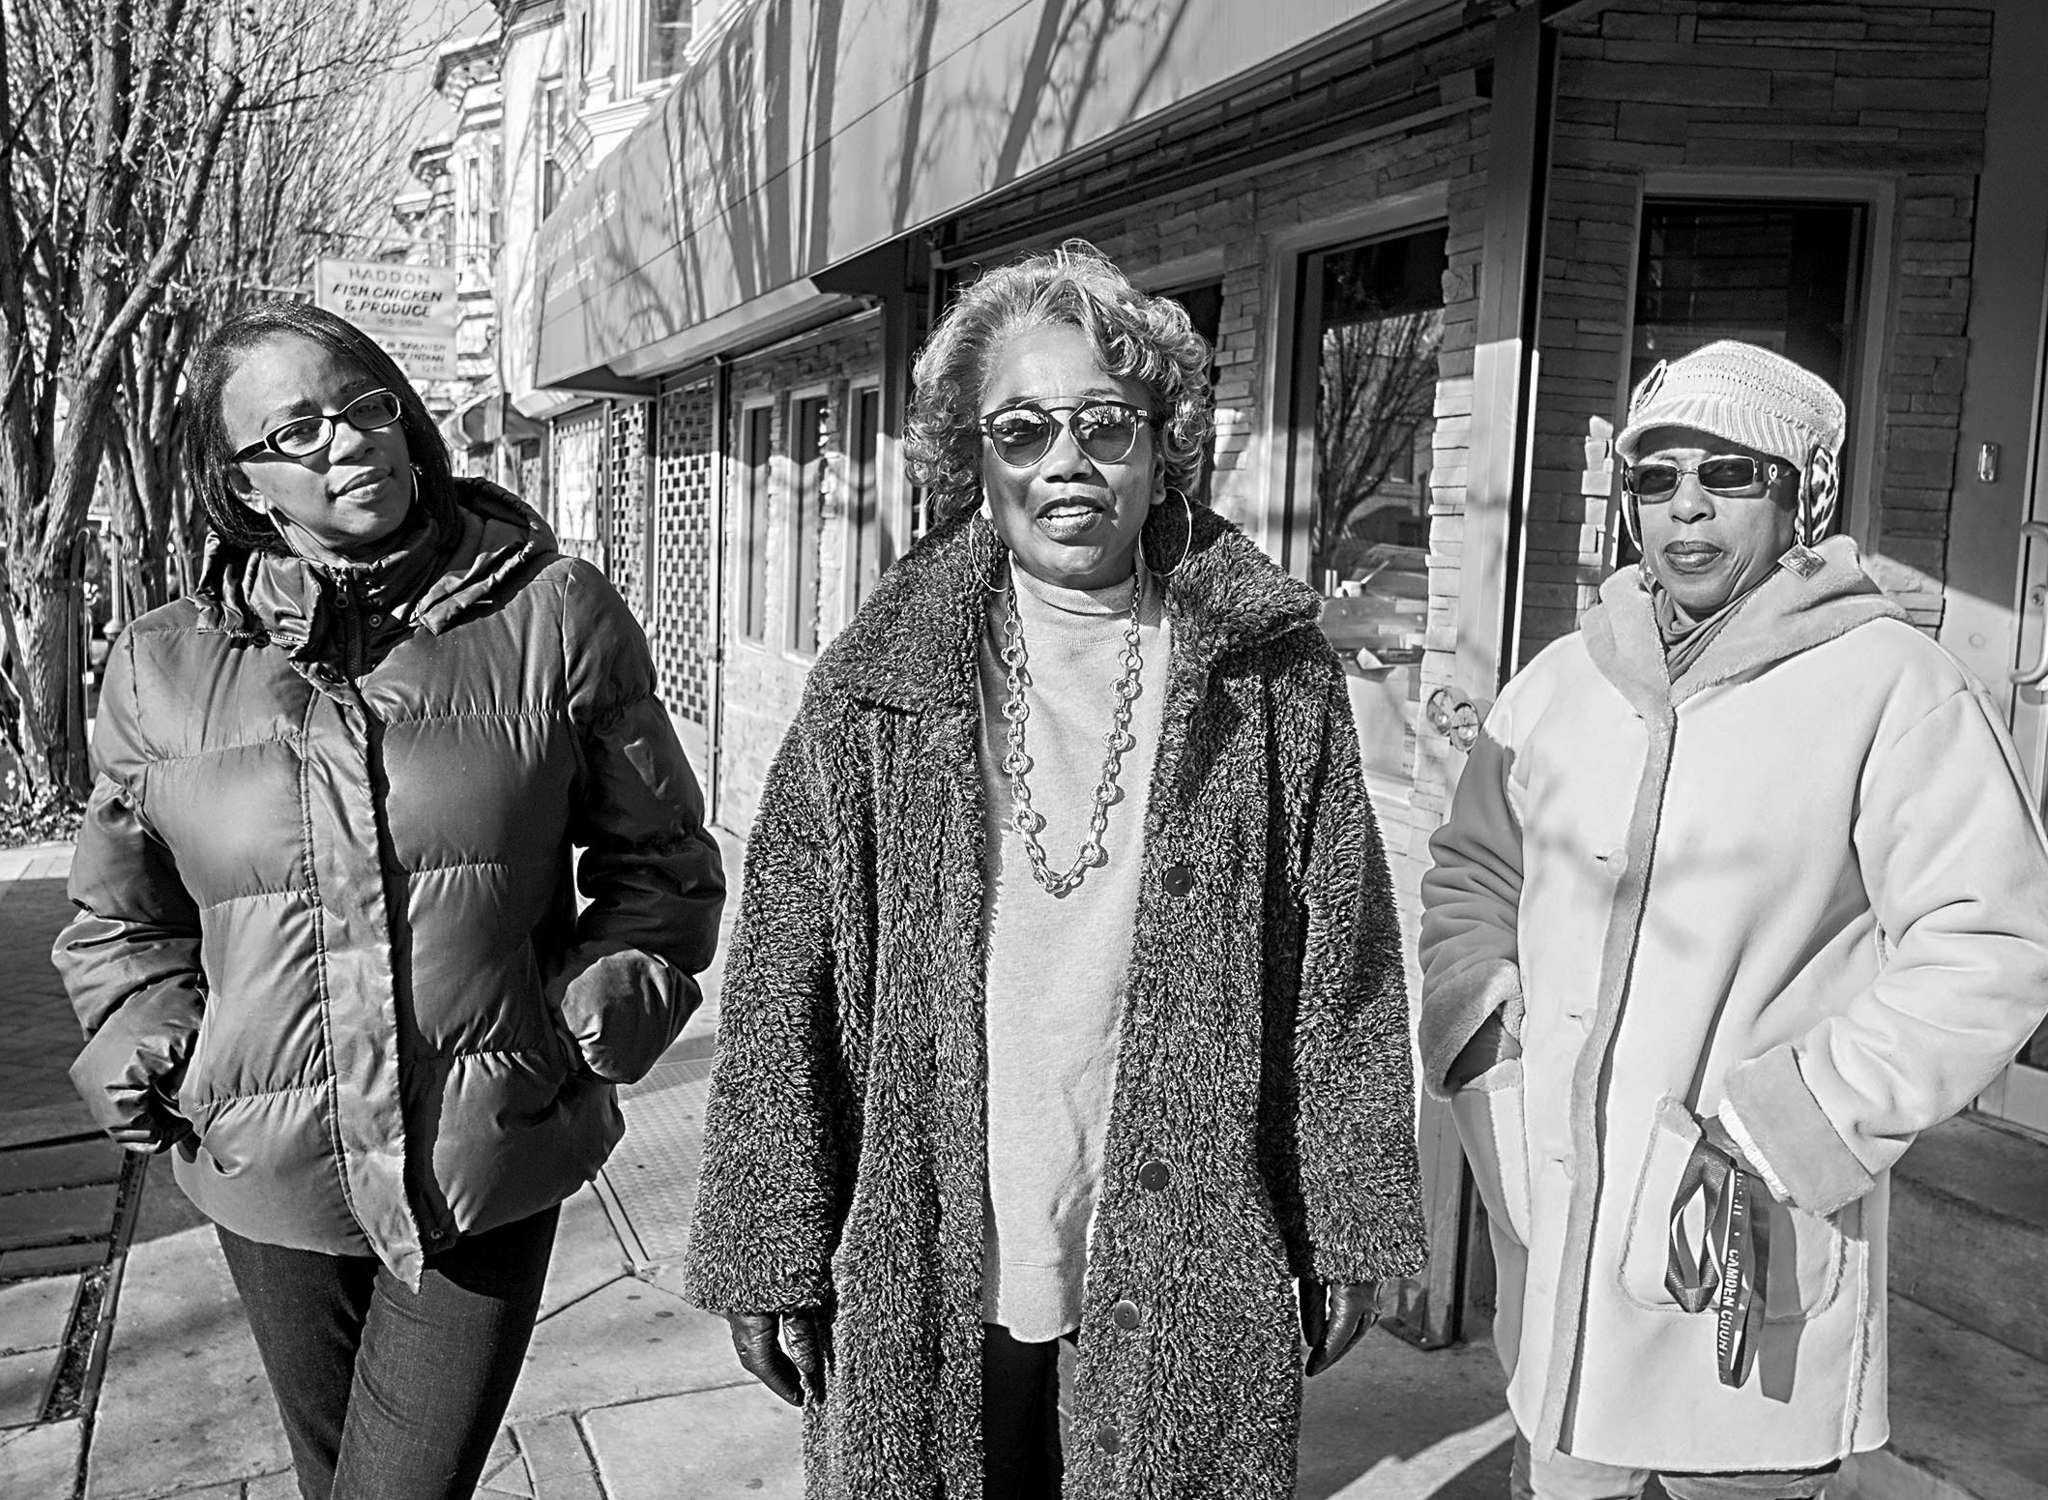 Parkside Business and Community in Partnership executive director Bridget Phifer (center) with community outreach specialists Miosha Lawrence (left) and Sheila Greene on Haddon Avenue, where the group is working to revitalize vacant properties.